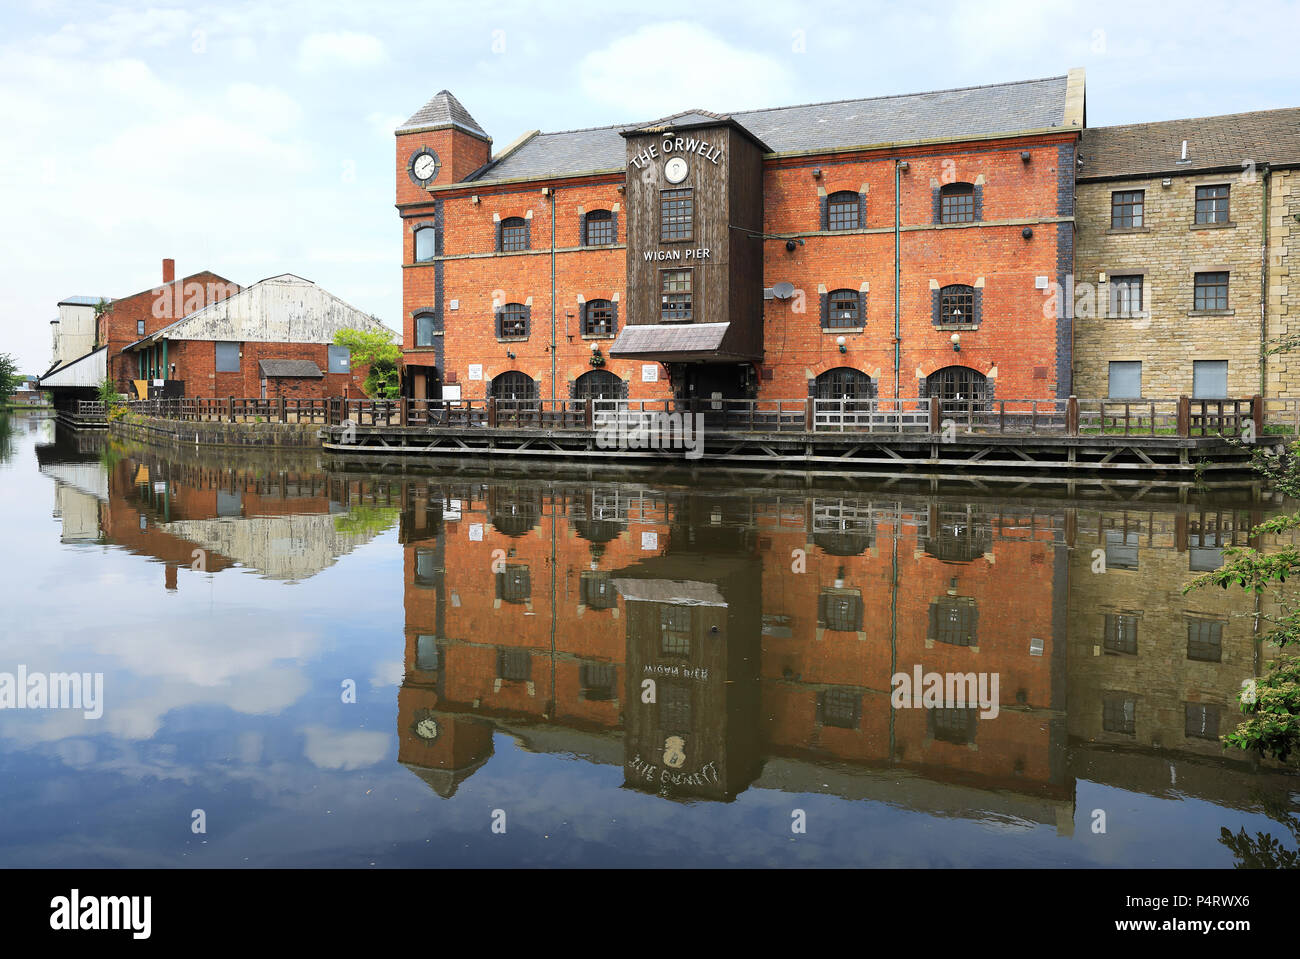 Wigan Pier, made famous by George Orwell, in Lancashire in NW England, UK - Stock Image